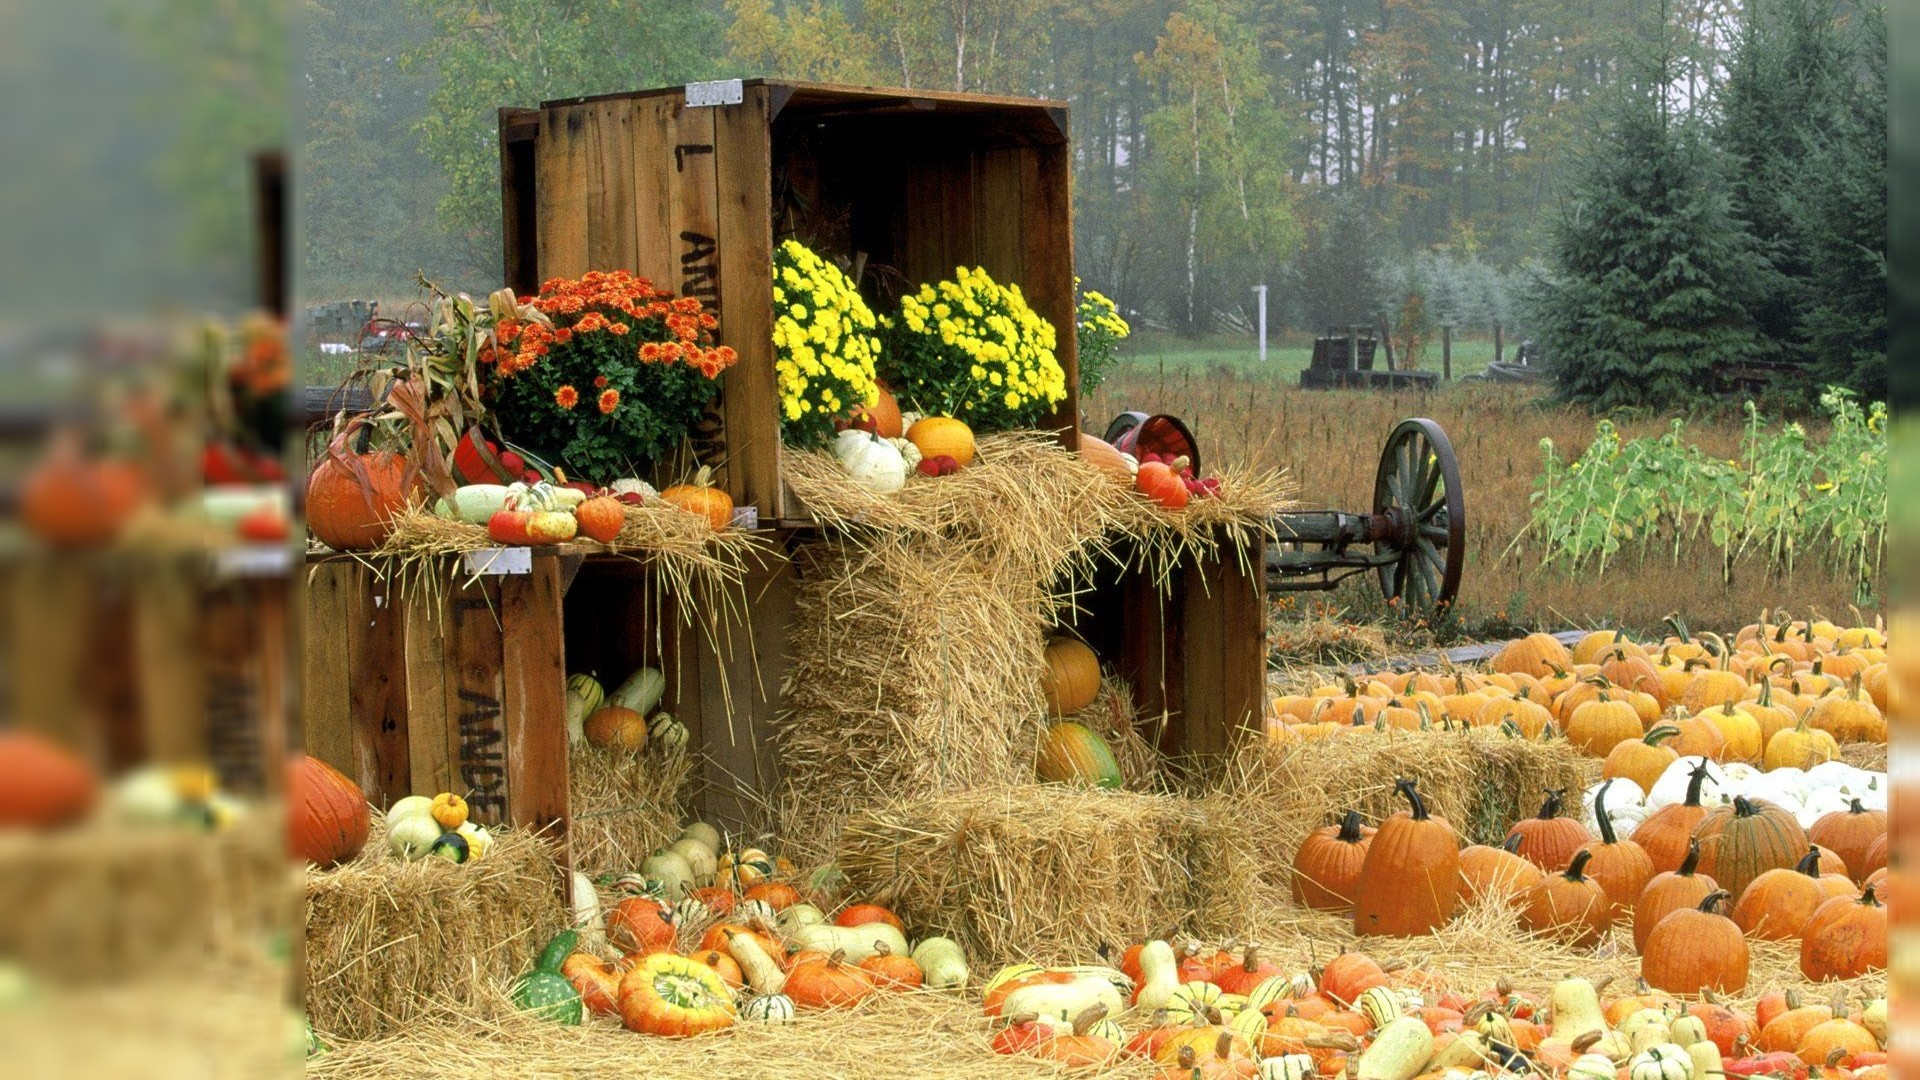 59 Fall Pumpkin Wallpaper And Screensavers